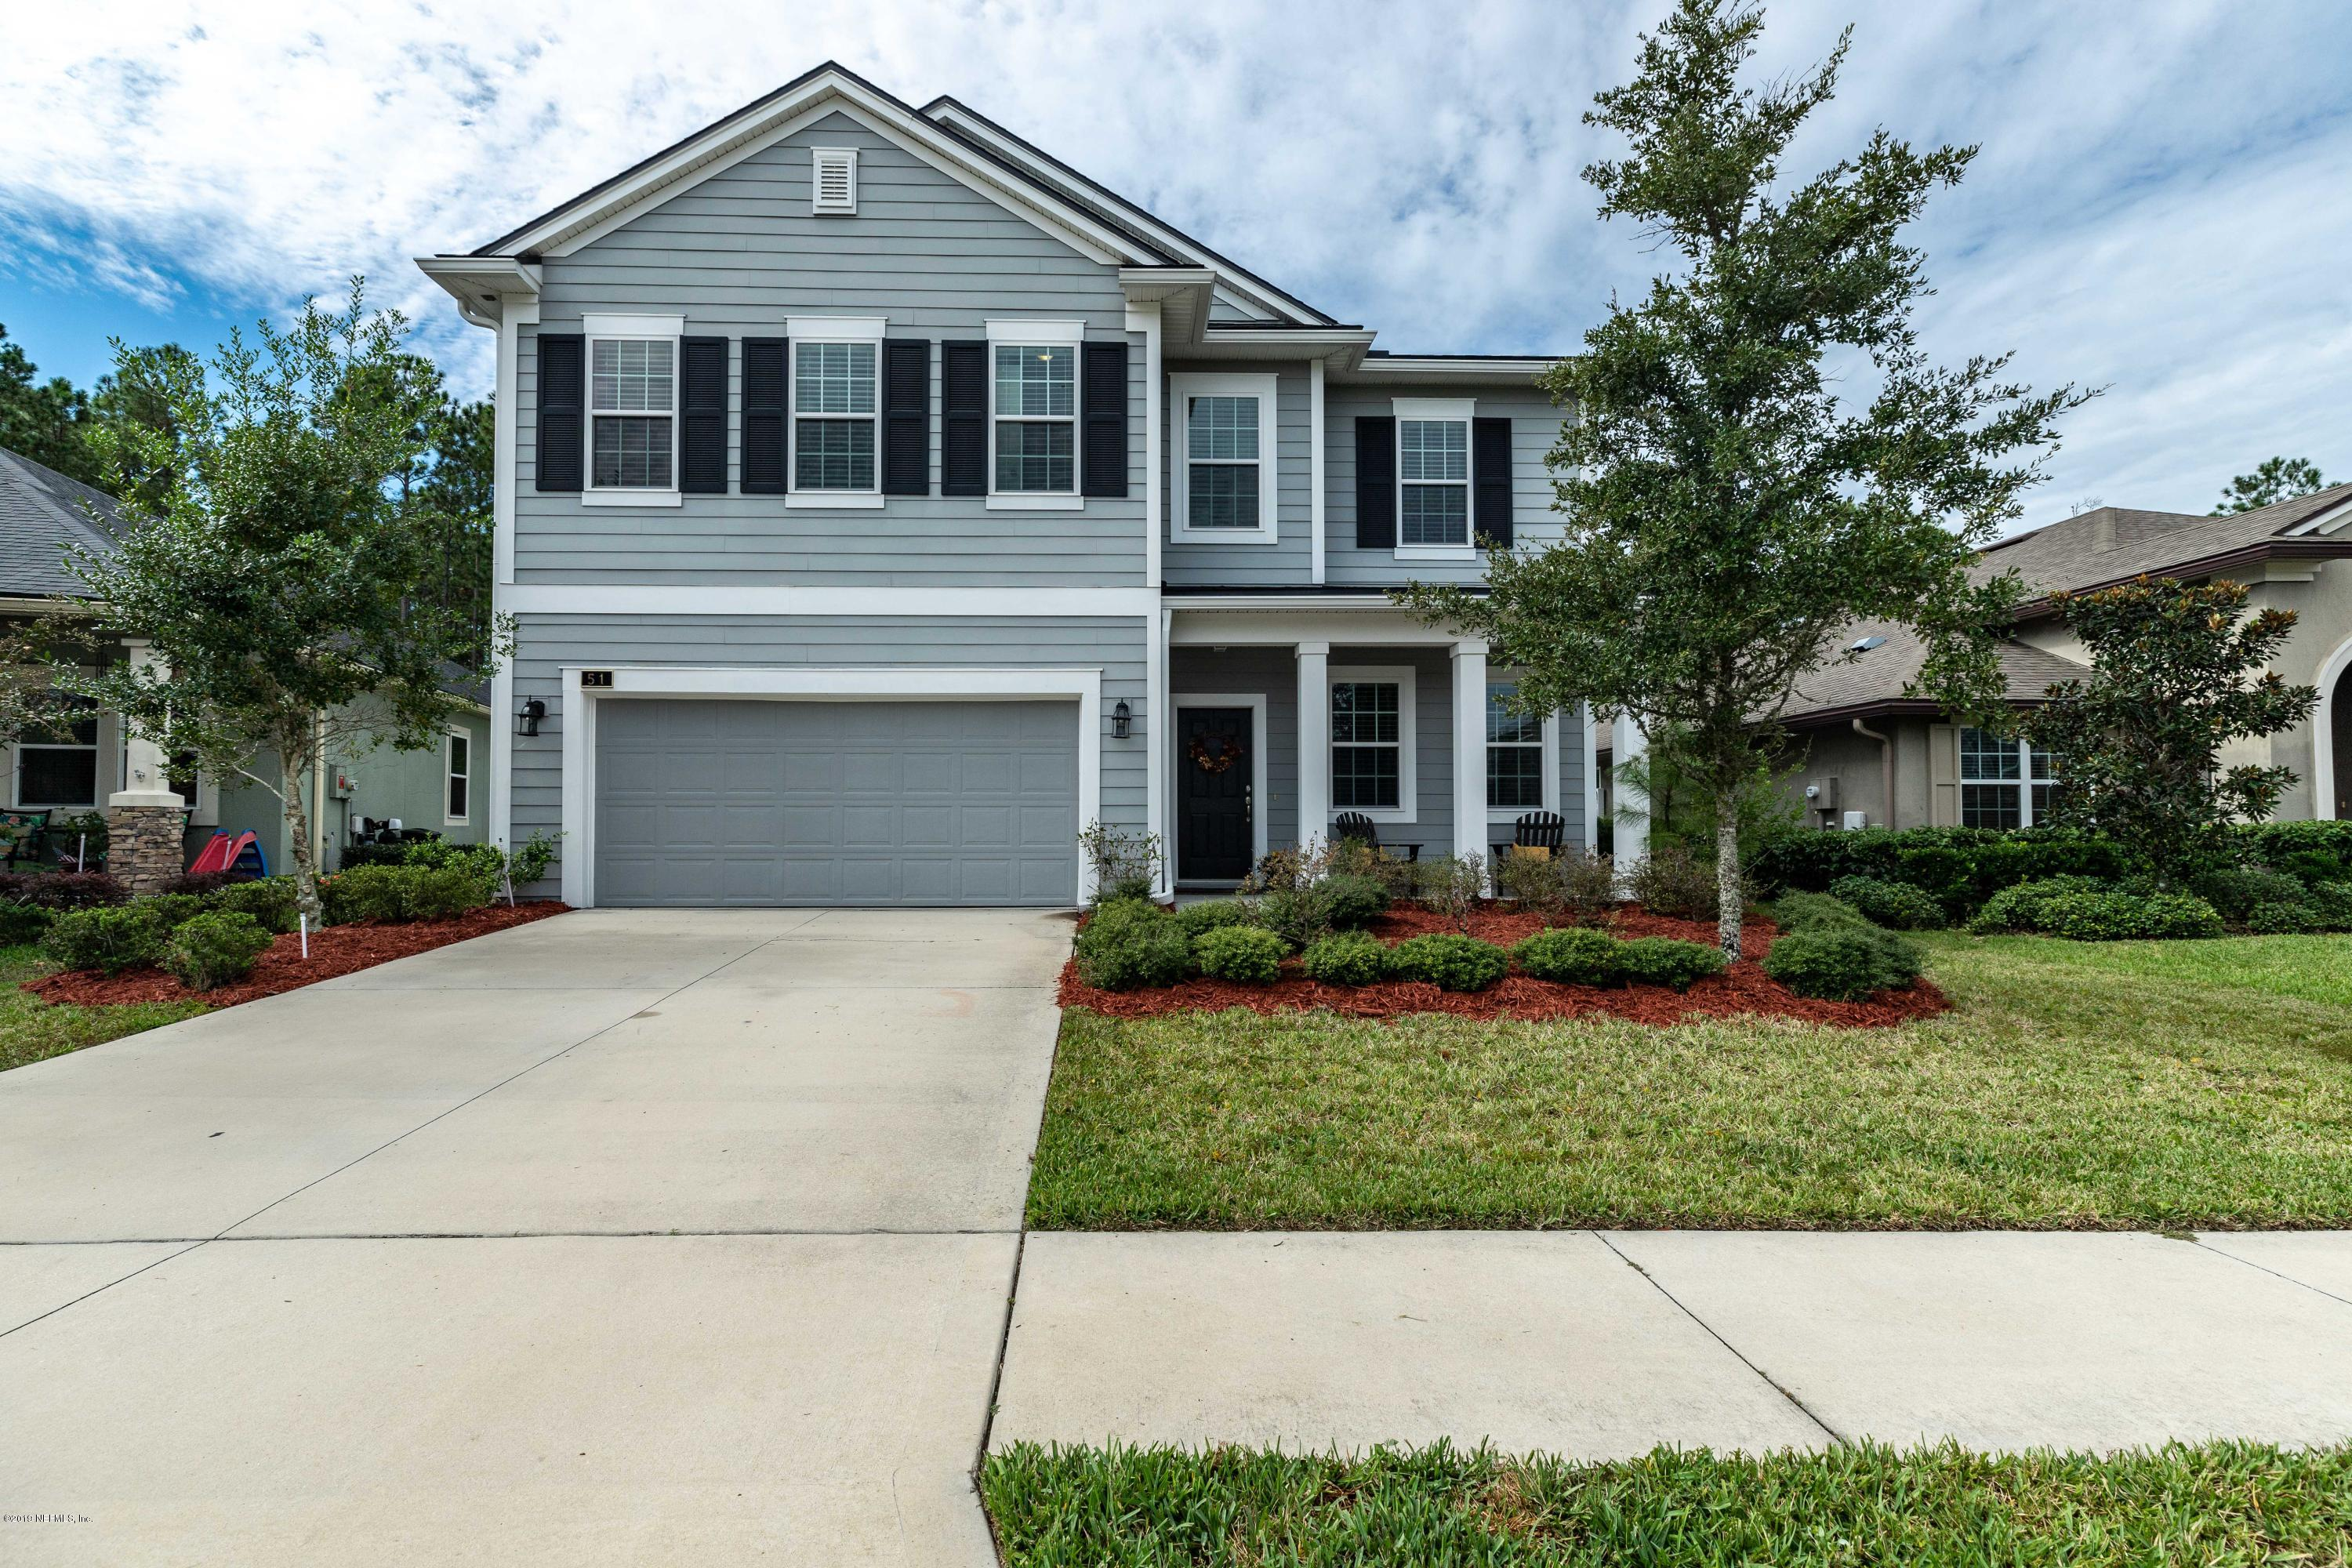 51 WILLOW WINDS, ST JOHNS, FLORIDA 32259, 4 Bedrooms Bedrooms, ,2 BathroomsBathrooms,Residential - single family,For sale,WILLOW WINDS,1020609